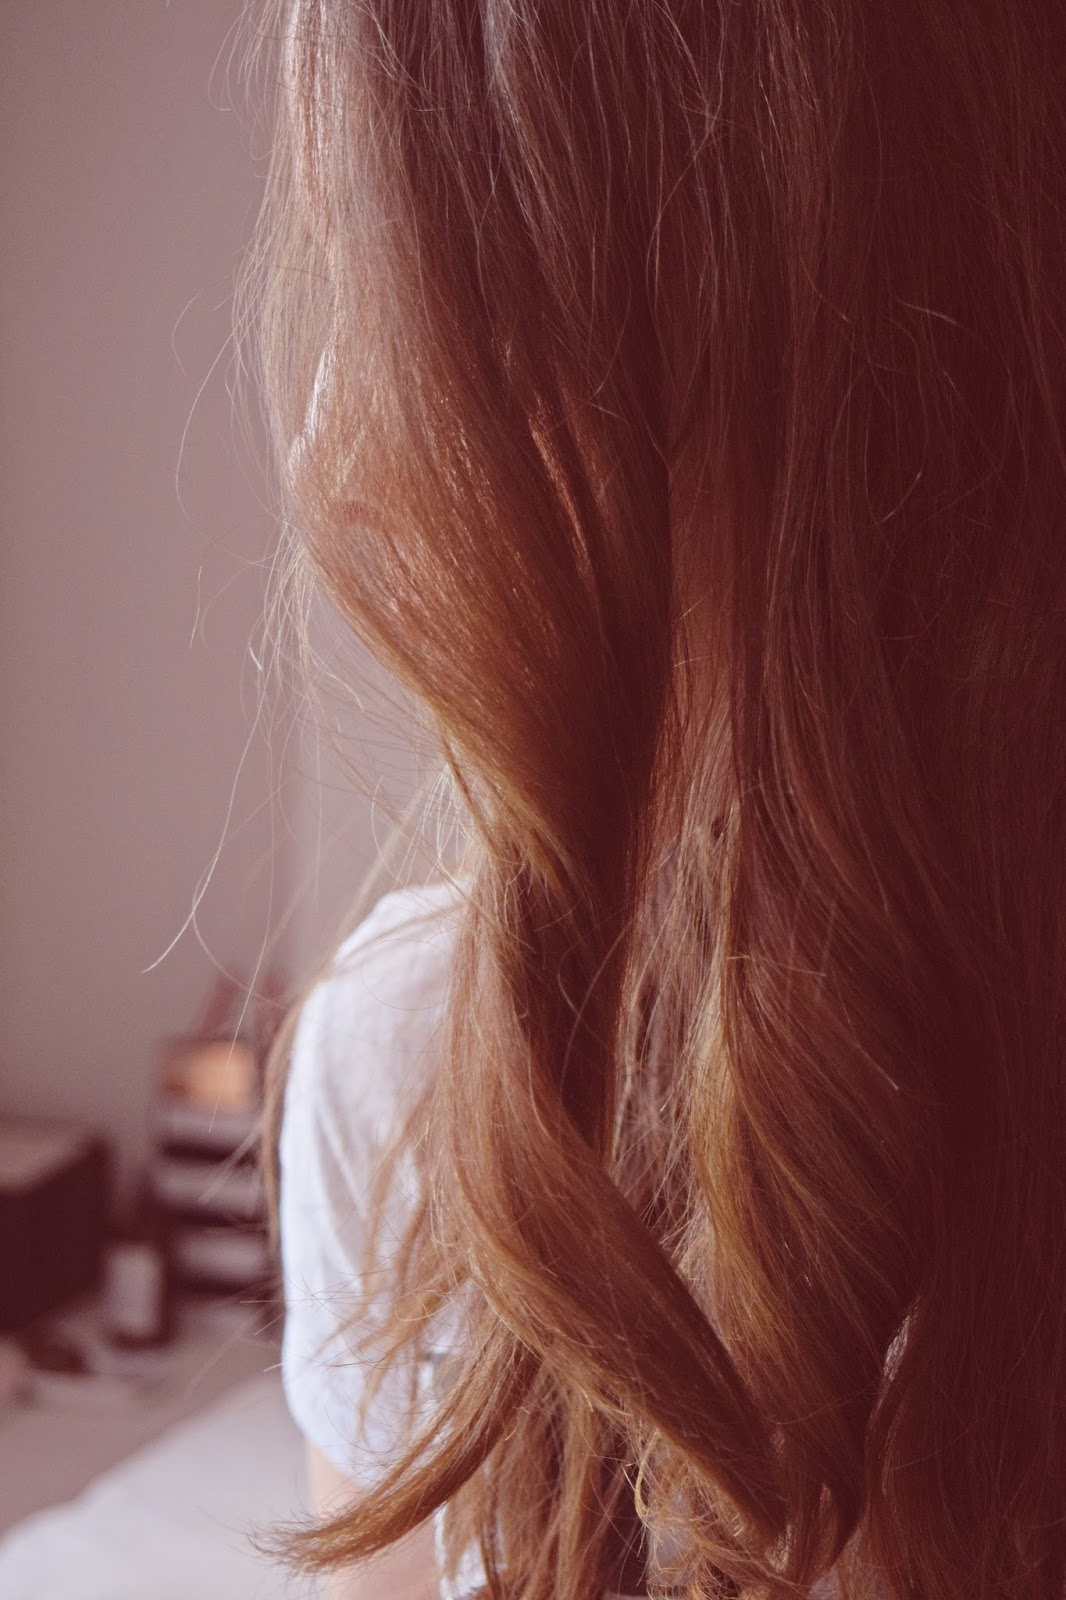 hair care in humid singapore, tips to tackle humidity